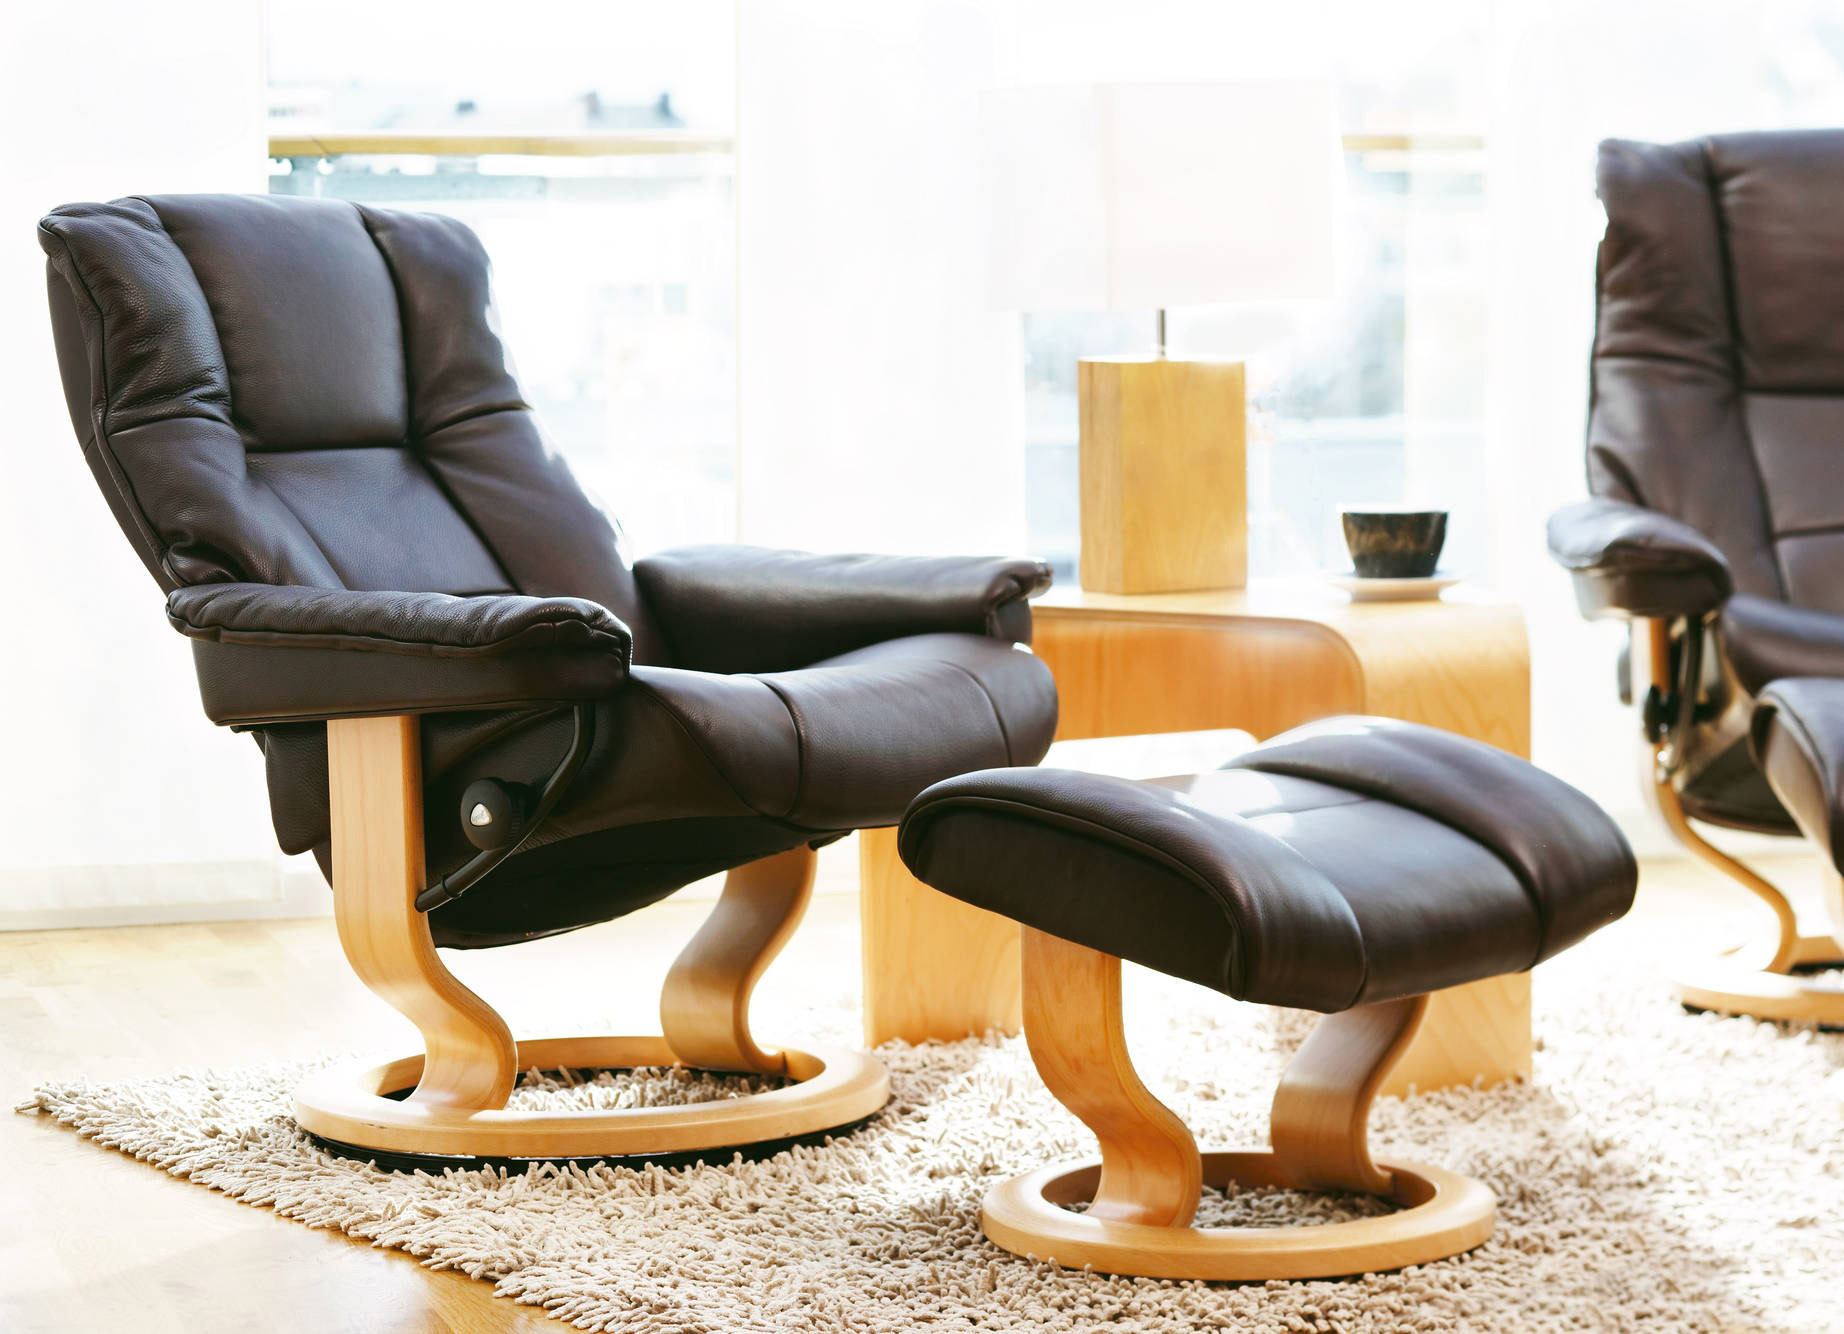 Stressless Video More About Stressless Scan Decor